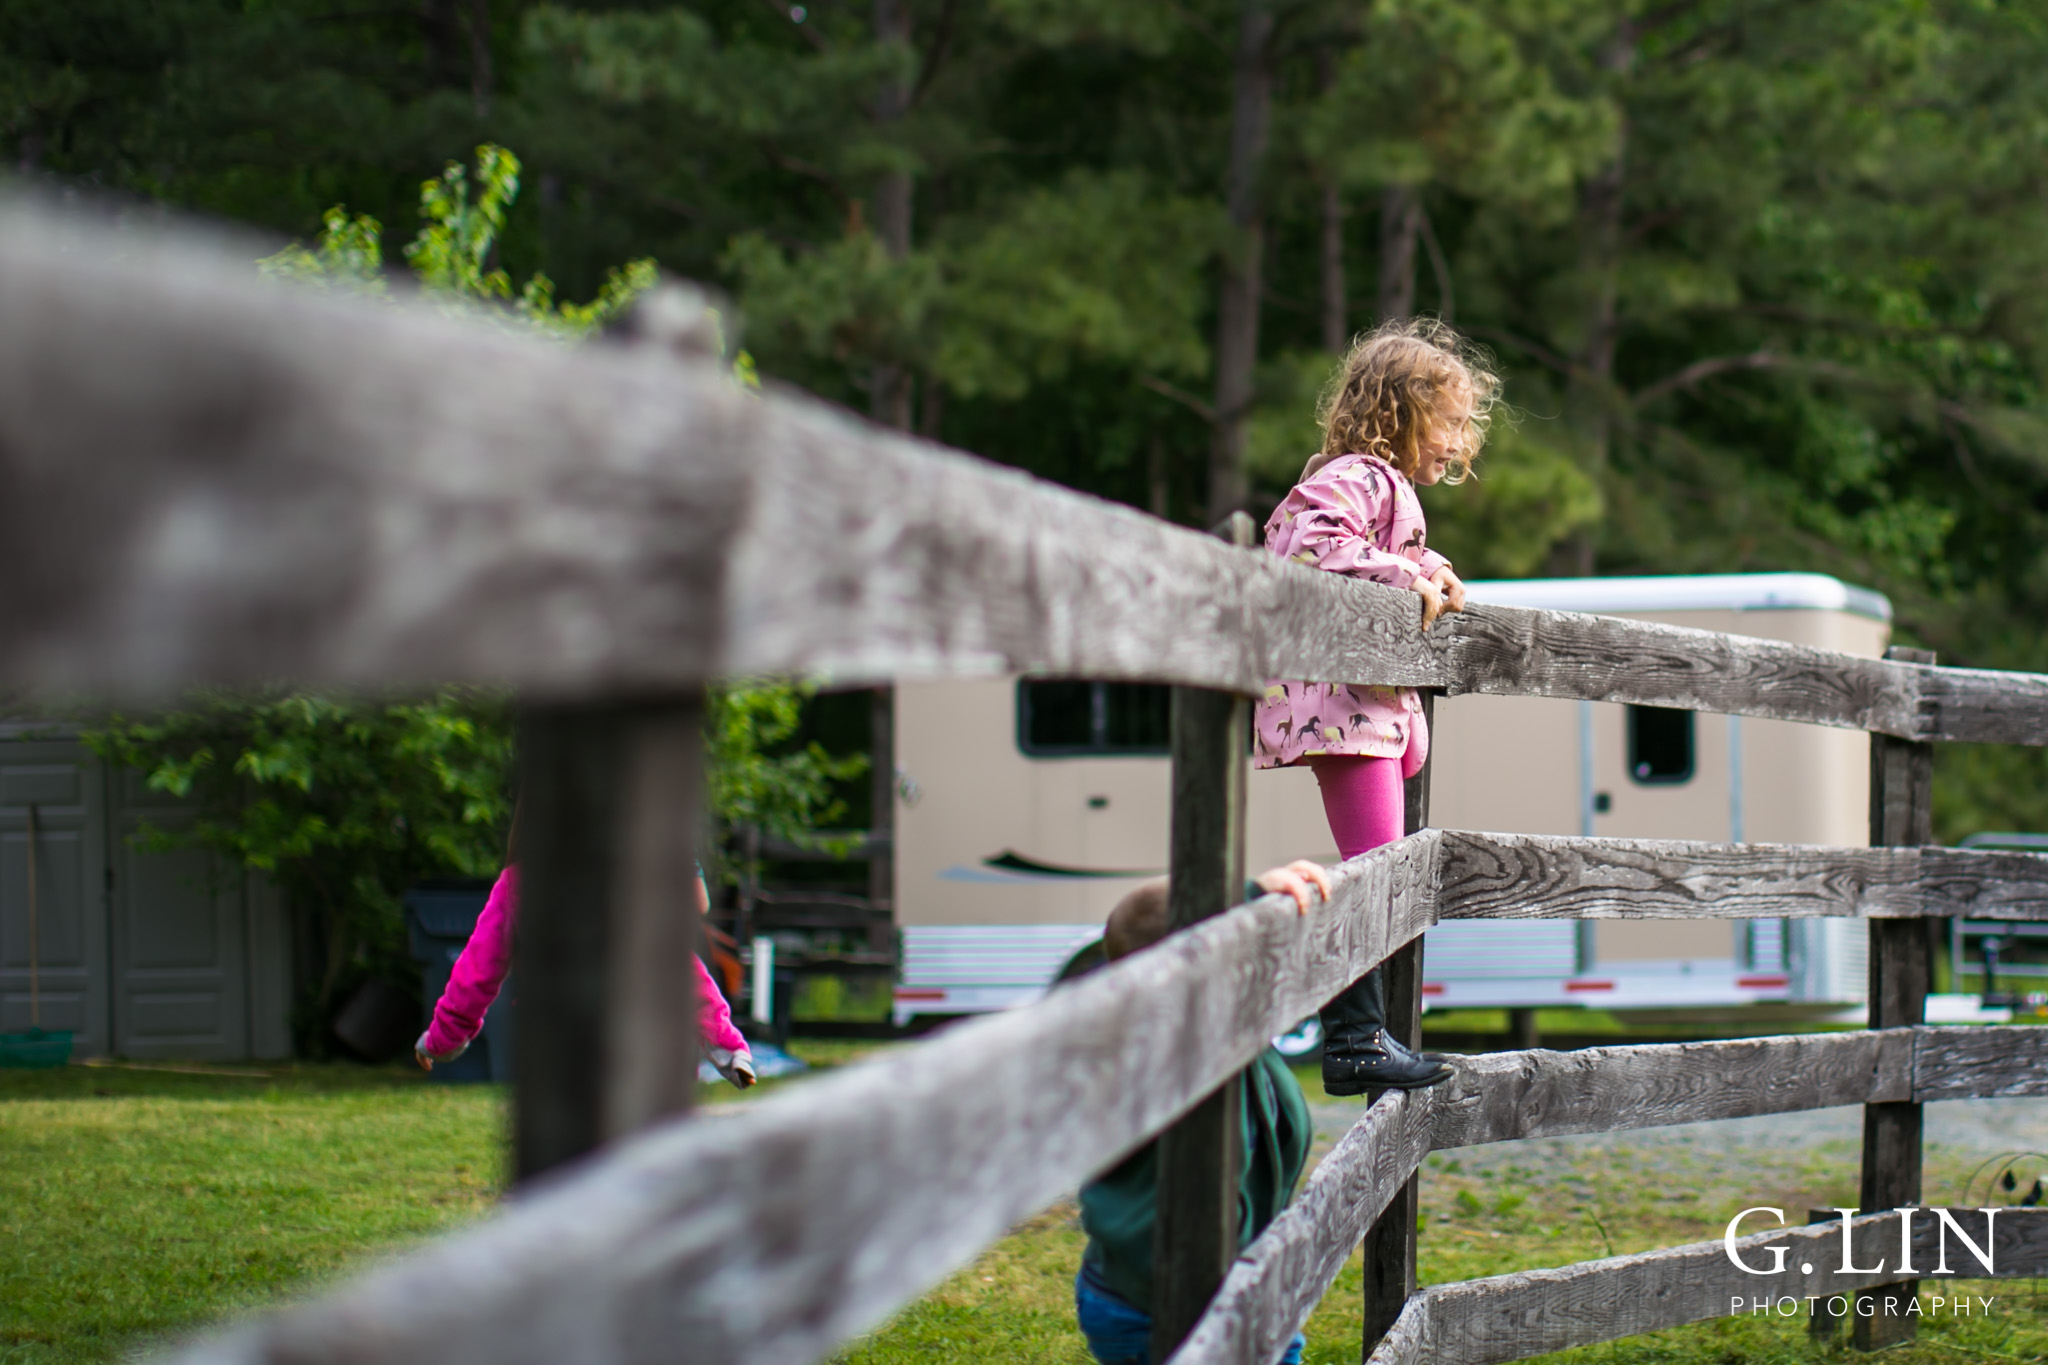 G. Lin Photography | Raleigh Event Photographer | Girl on fence looking around